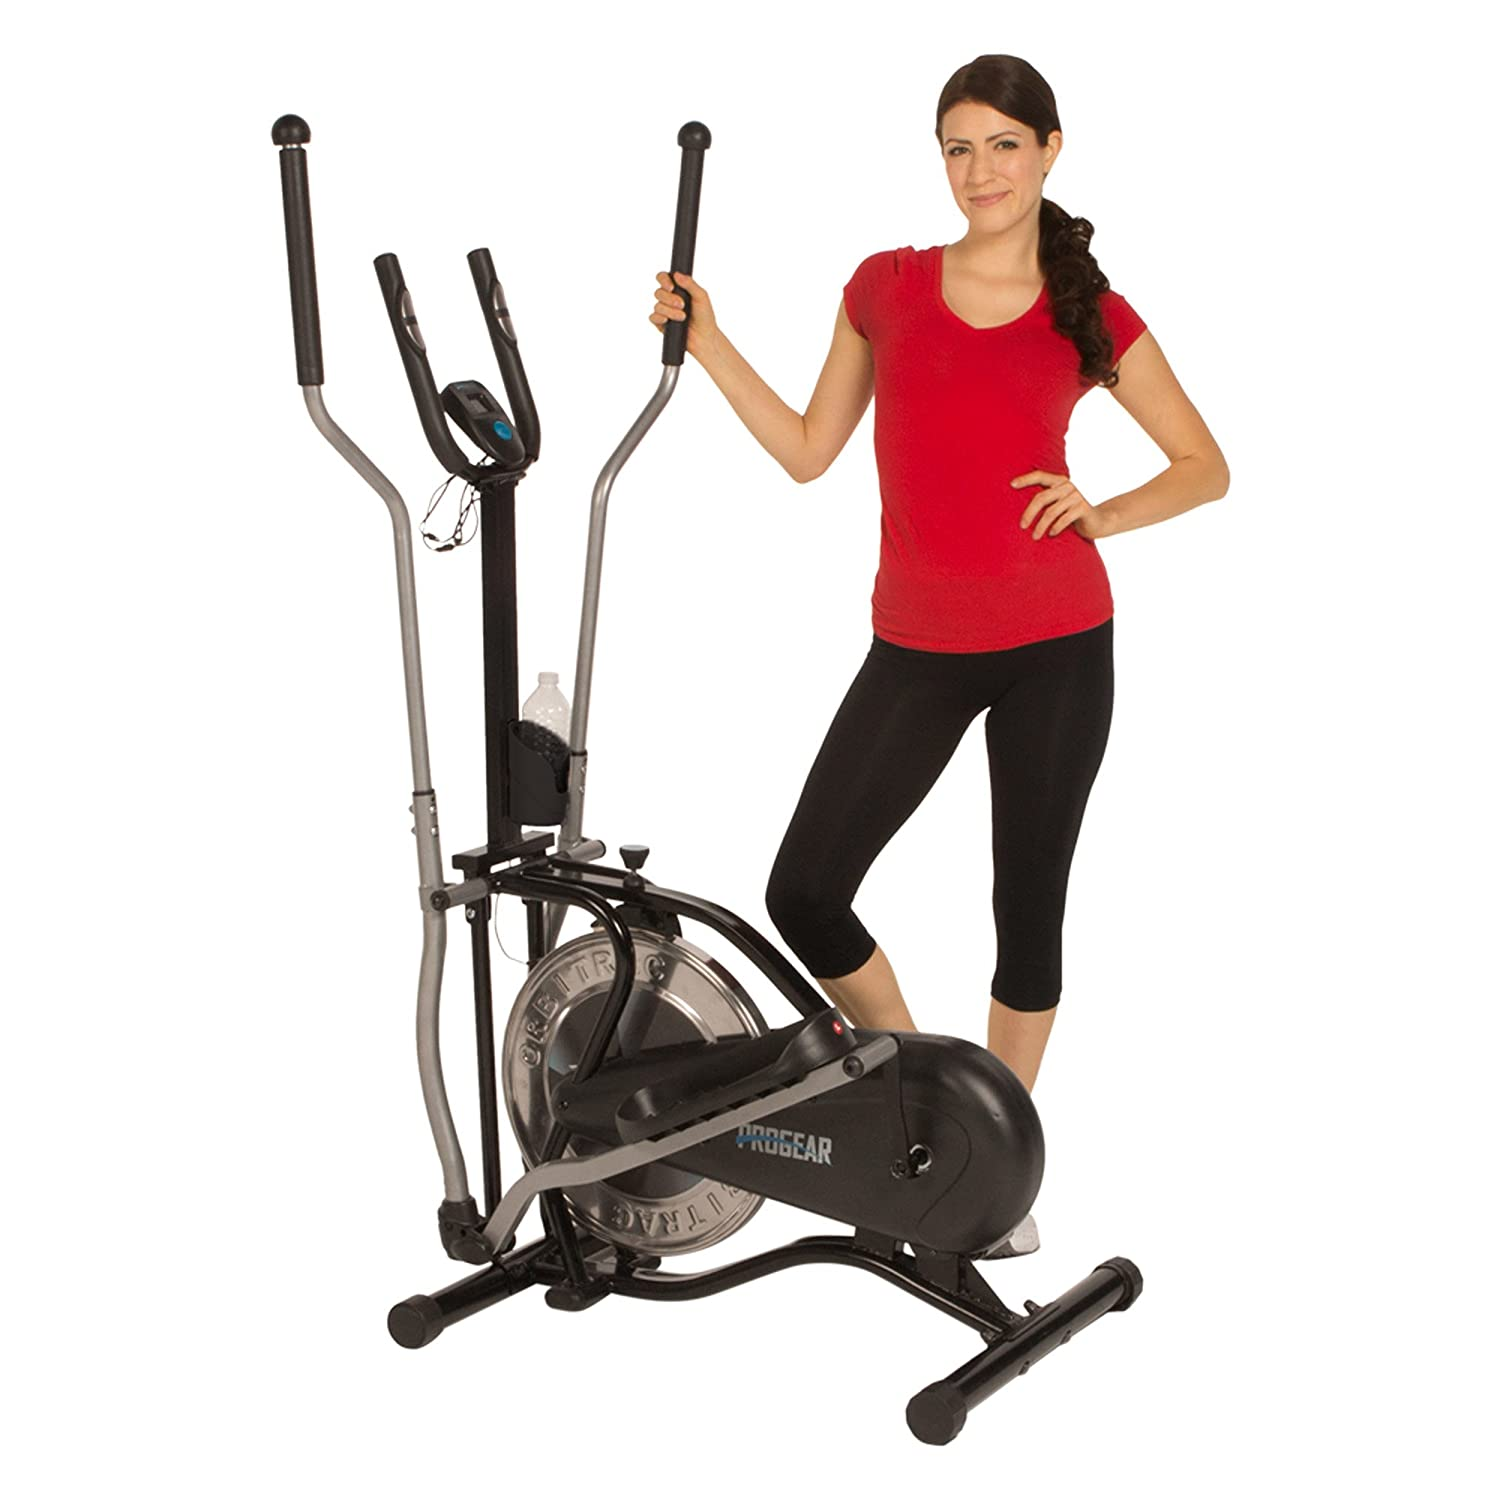 ProGear 500 LS Flywheel Drive Energy Elliptical